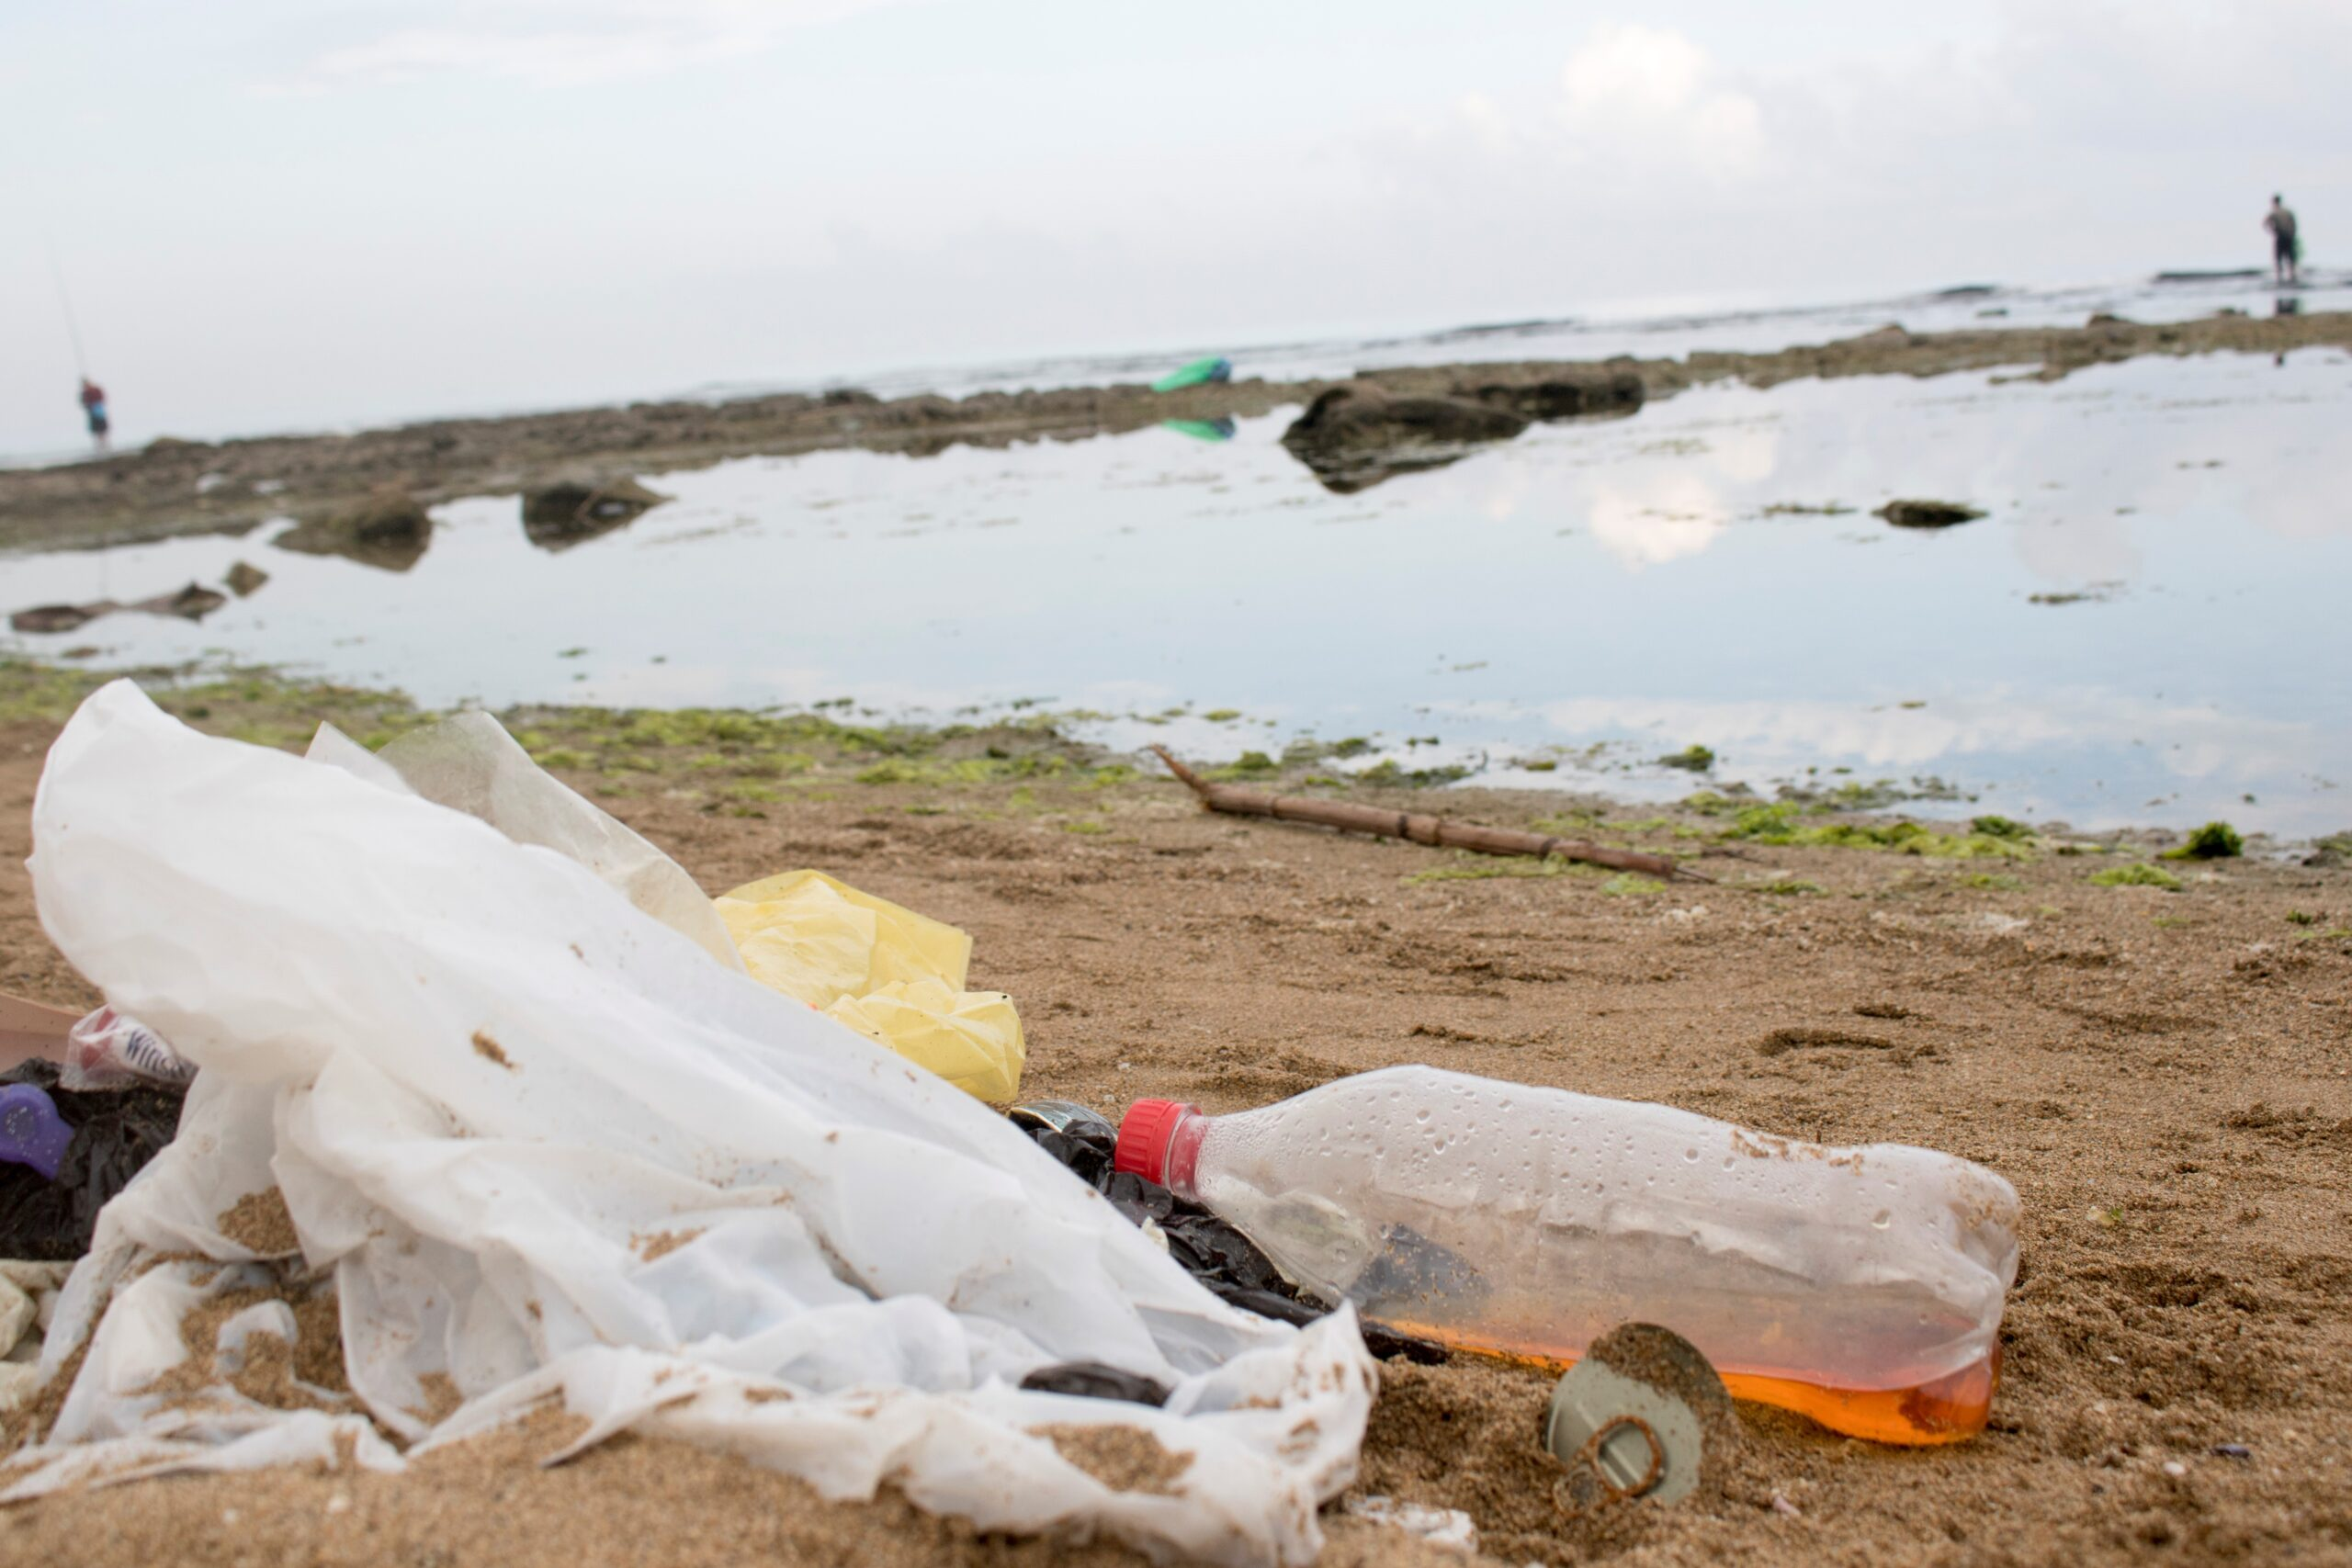 RE-1-P2P: Phasing out single-use plastics in the Mediterranean